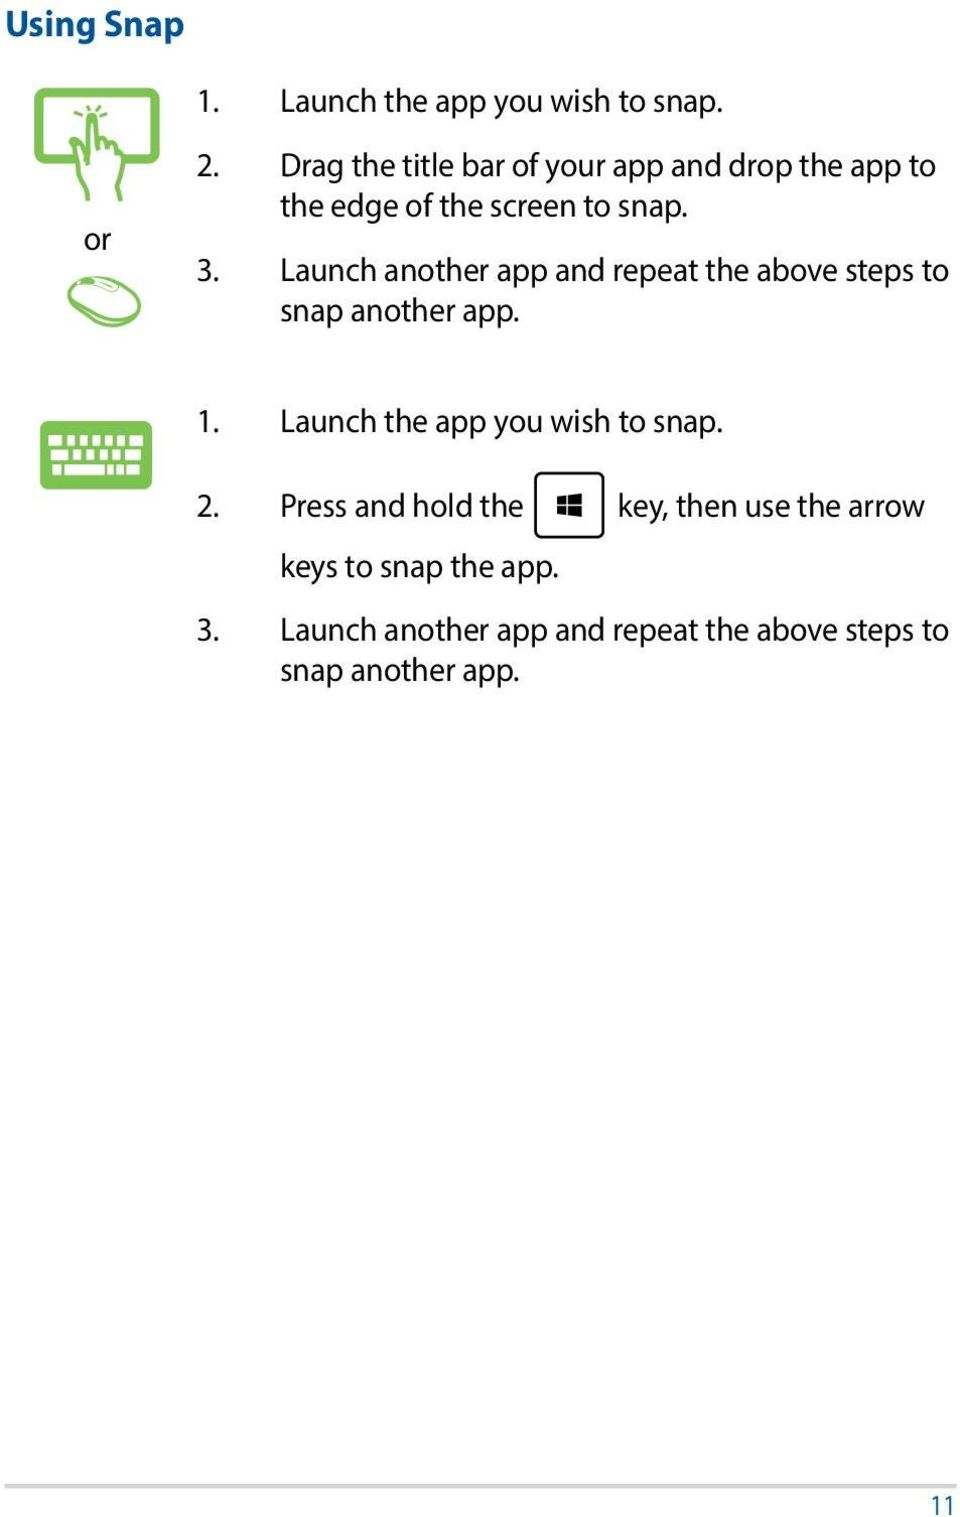 Launch another app and repeat the above steps to snap another app. 1.